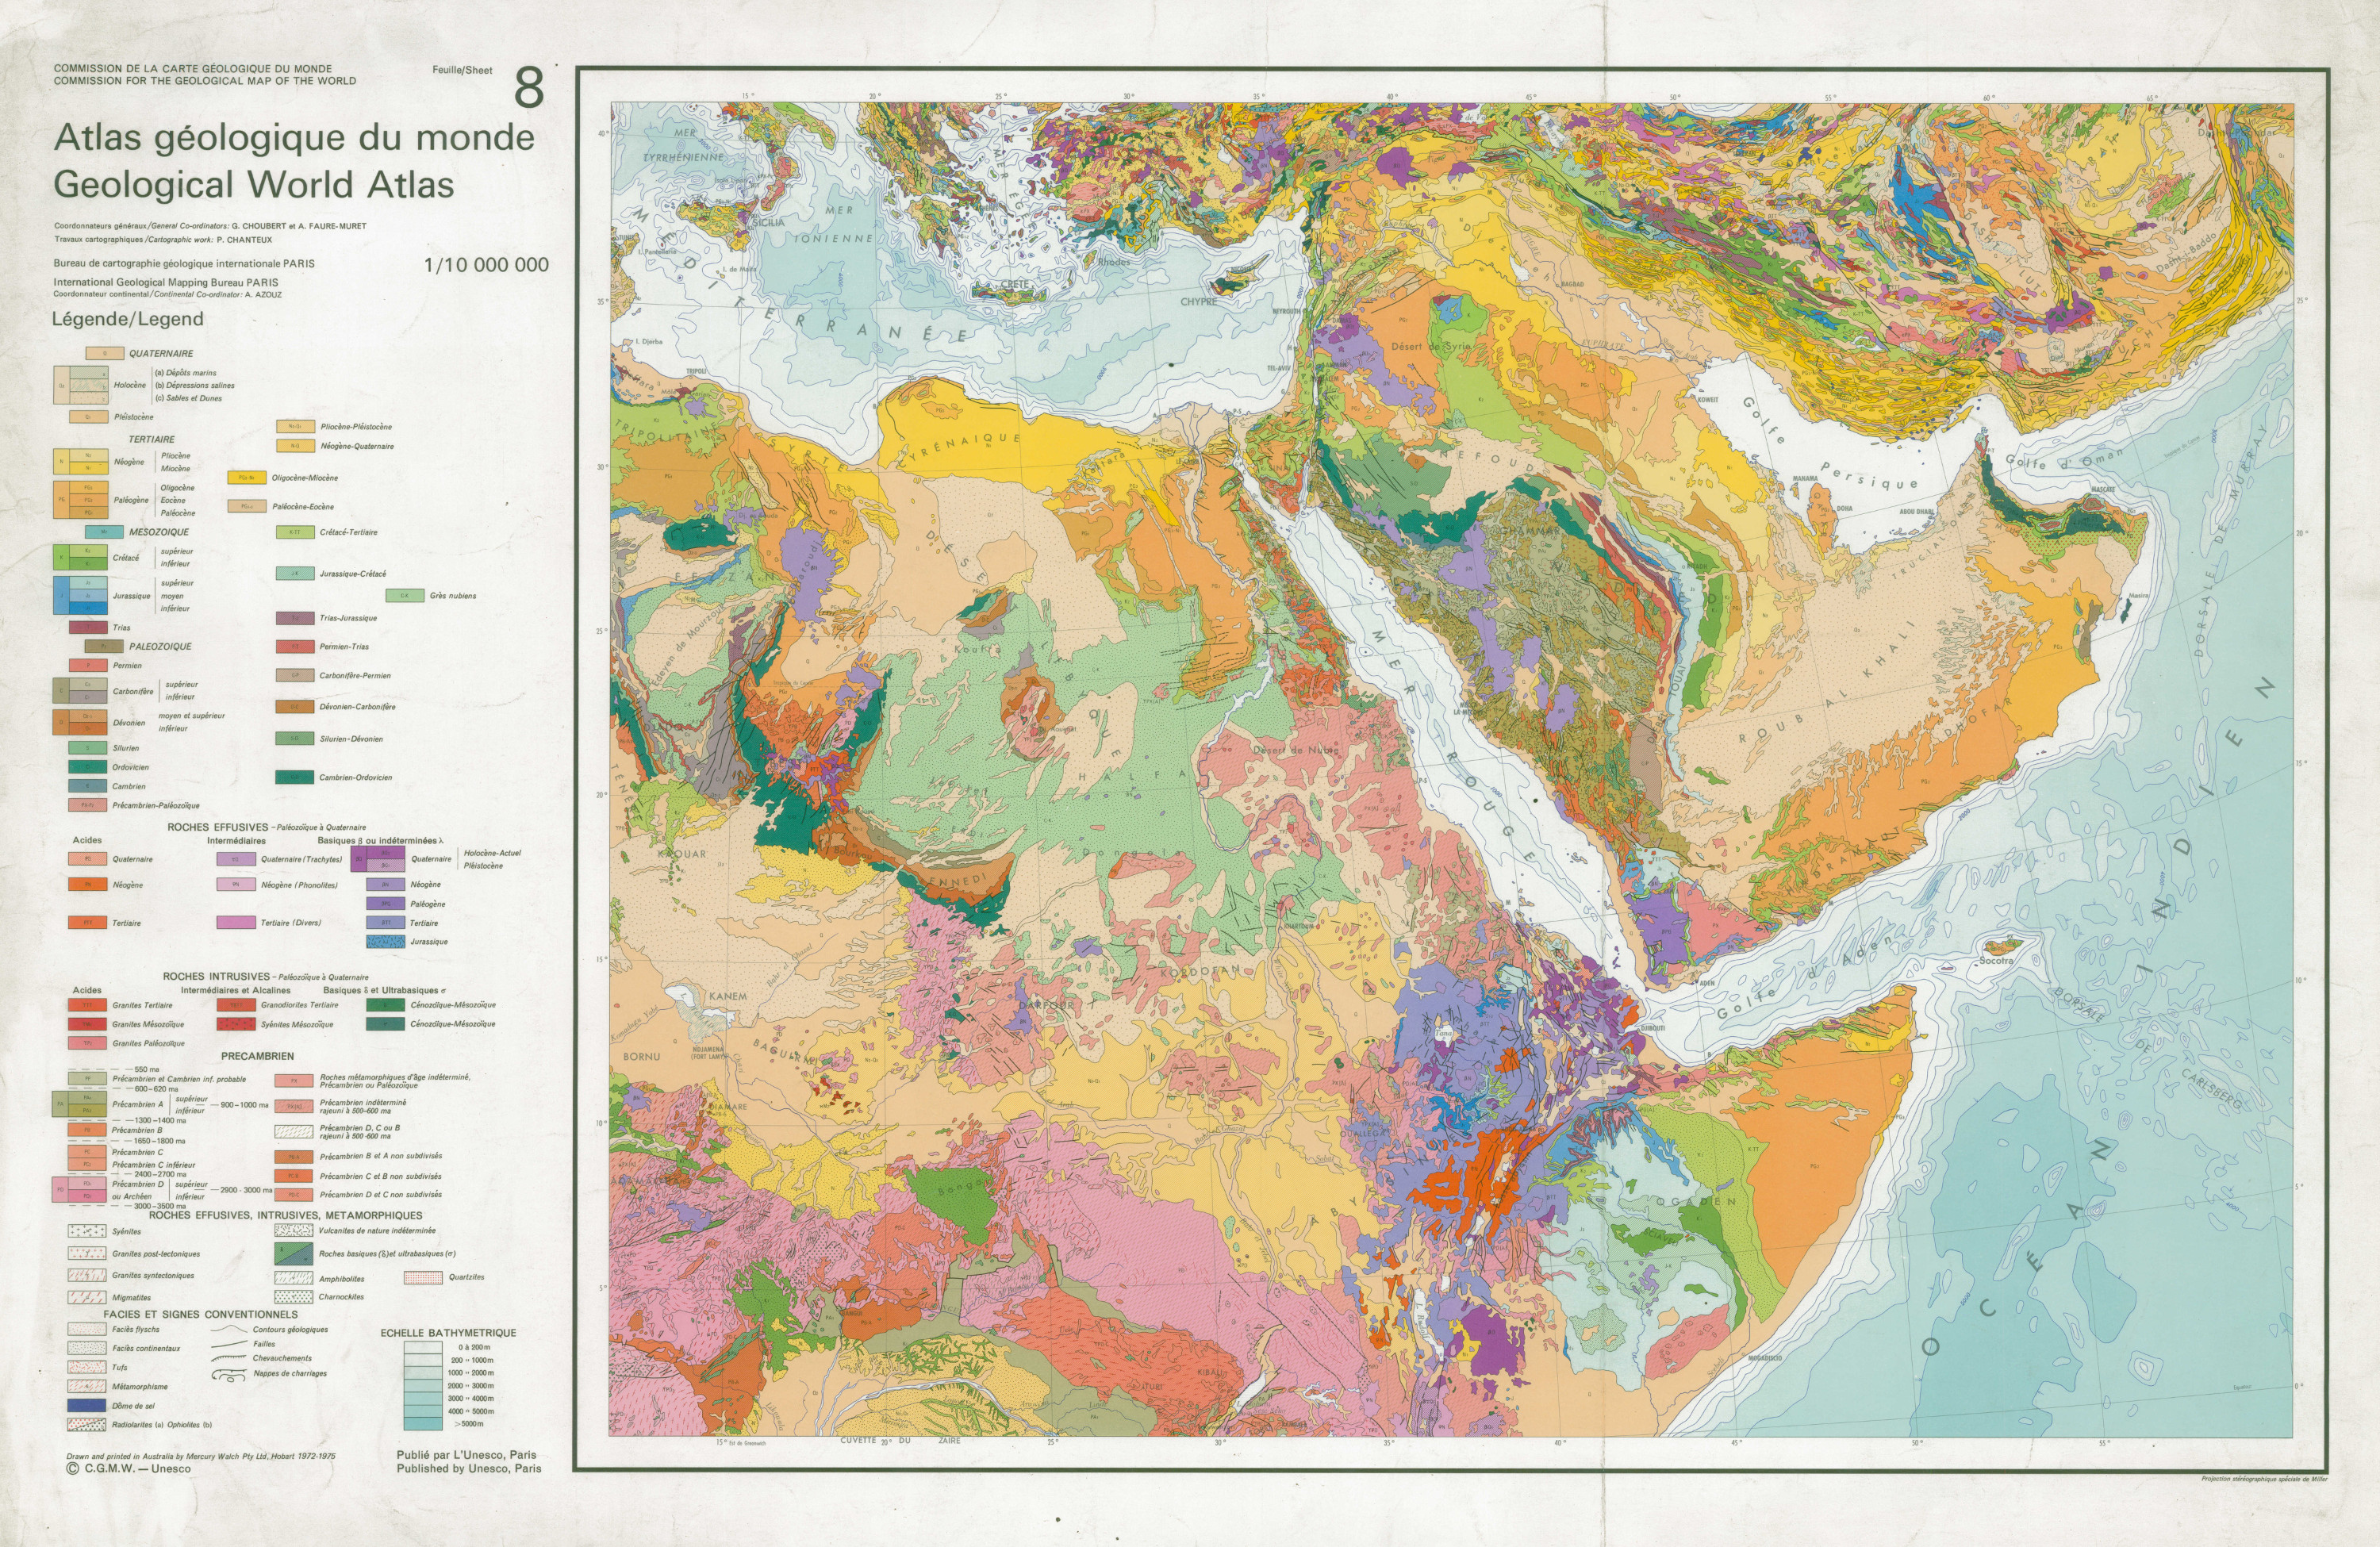 Bnu cd atlas geologique du monde geological world atlas gumiabroncs Image collections